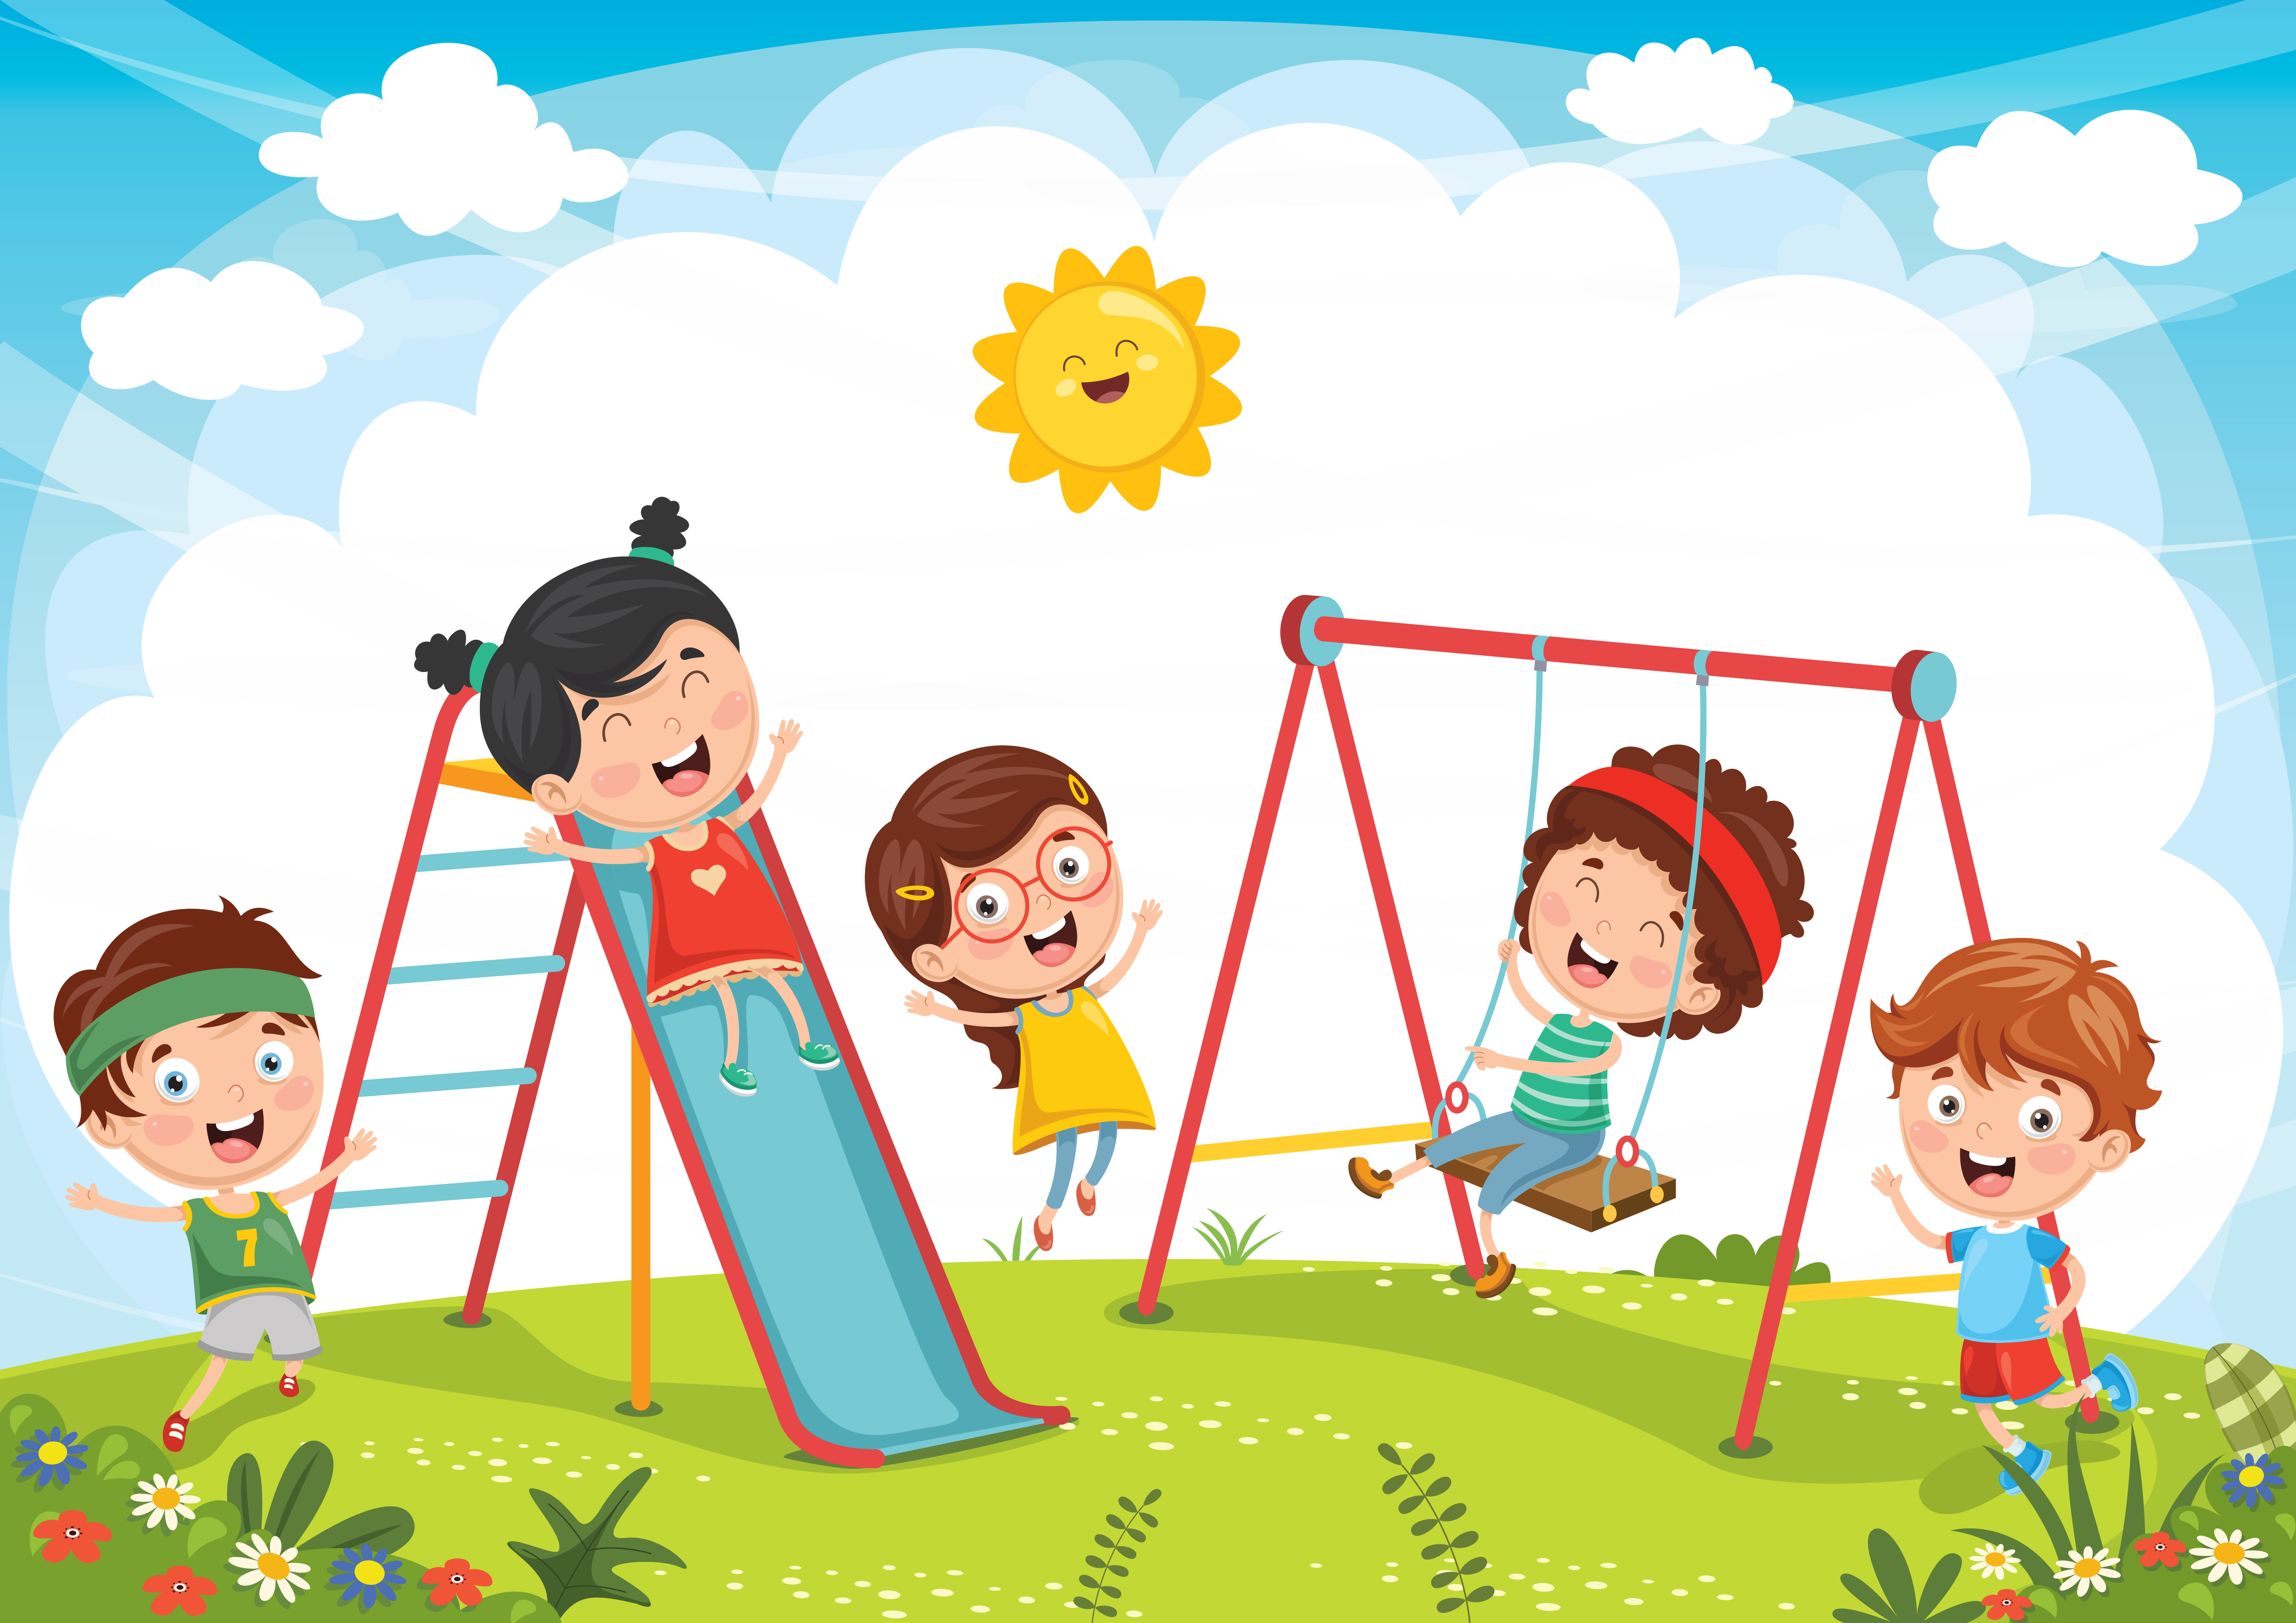 Kids Playing at Playground - Download Free Vectors ...